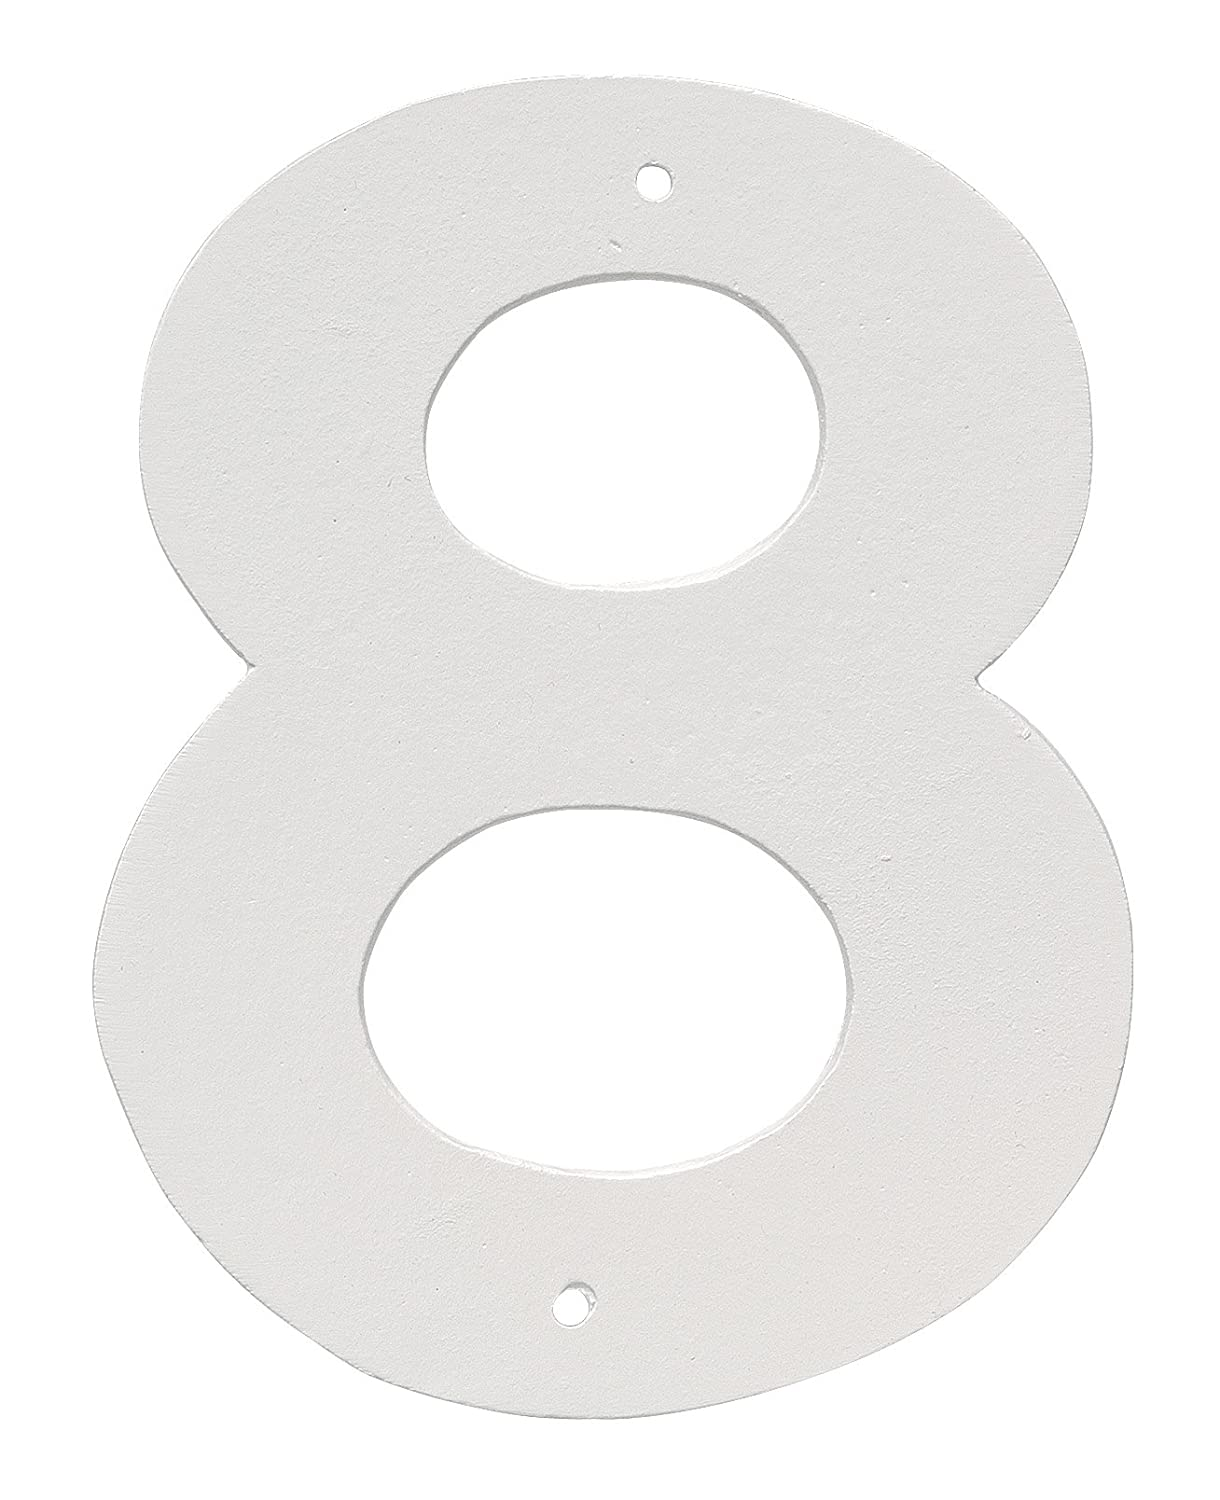 Montague Metal Products 8' Aluminum House Number 8 Outdoor Plaque, Medium, White